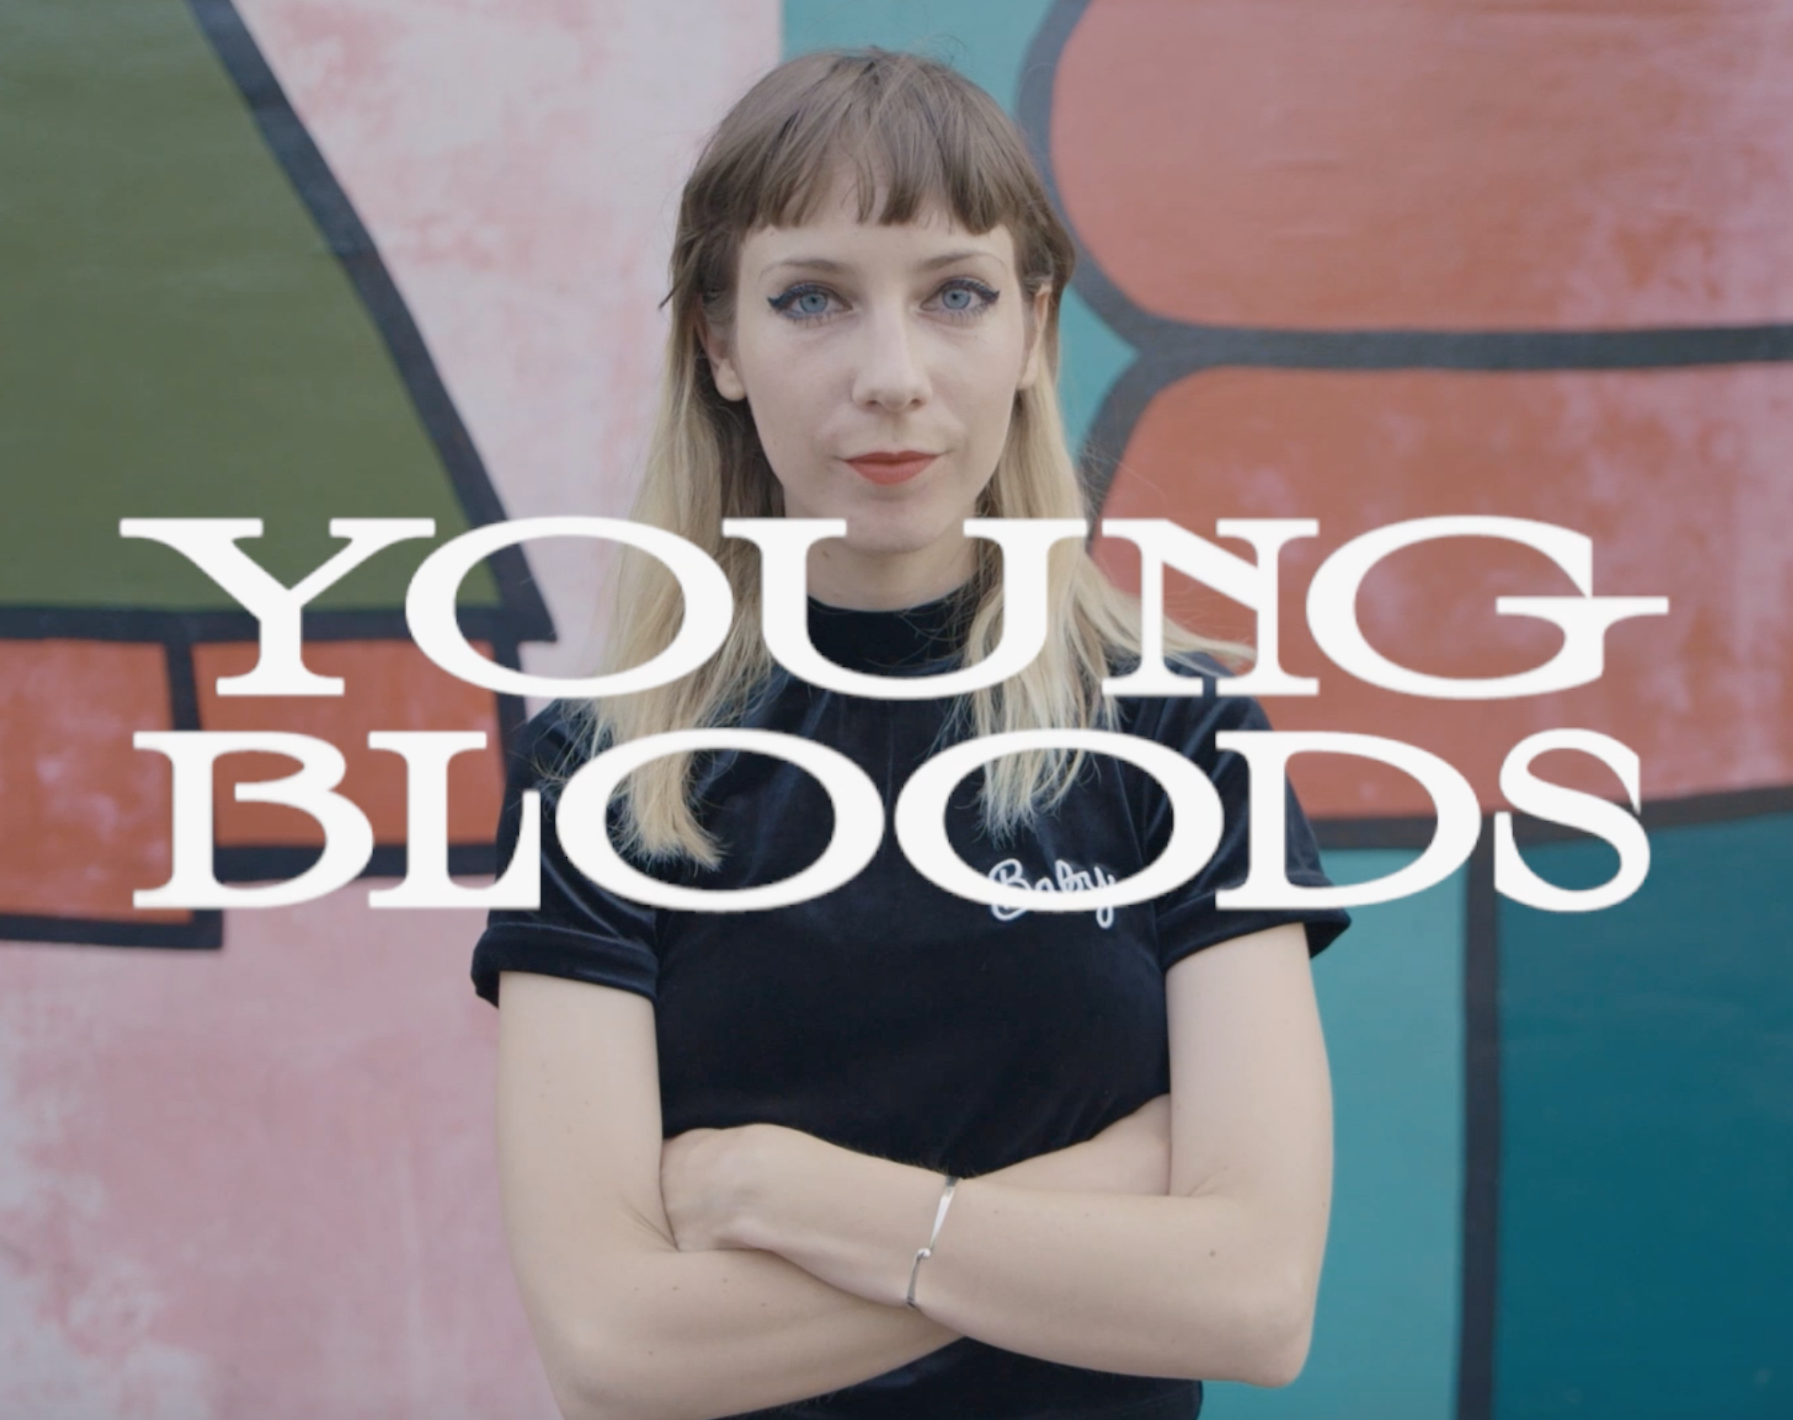 Young Bloods Episode 04: Berlin - These up-and-coming innovators are feeding off Berlin's creative energy and making it their own.